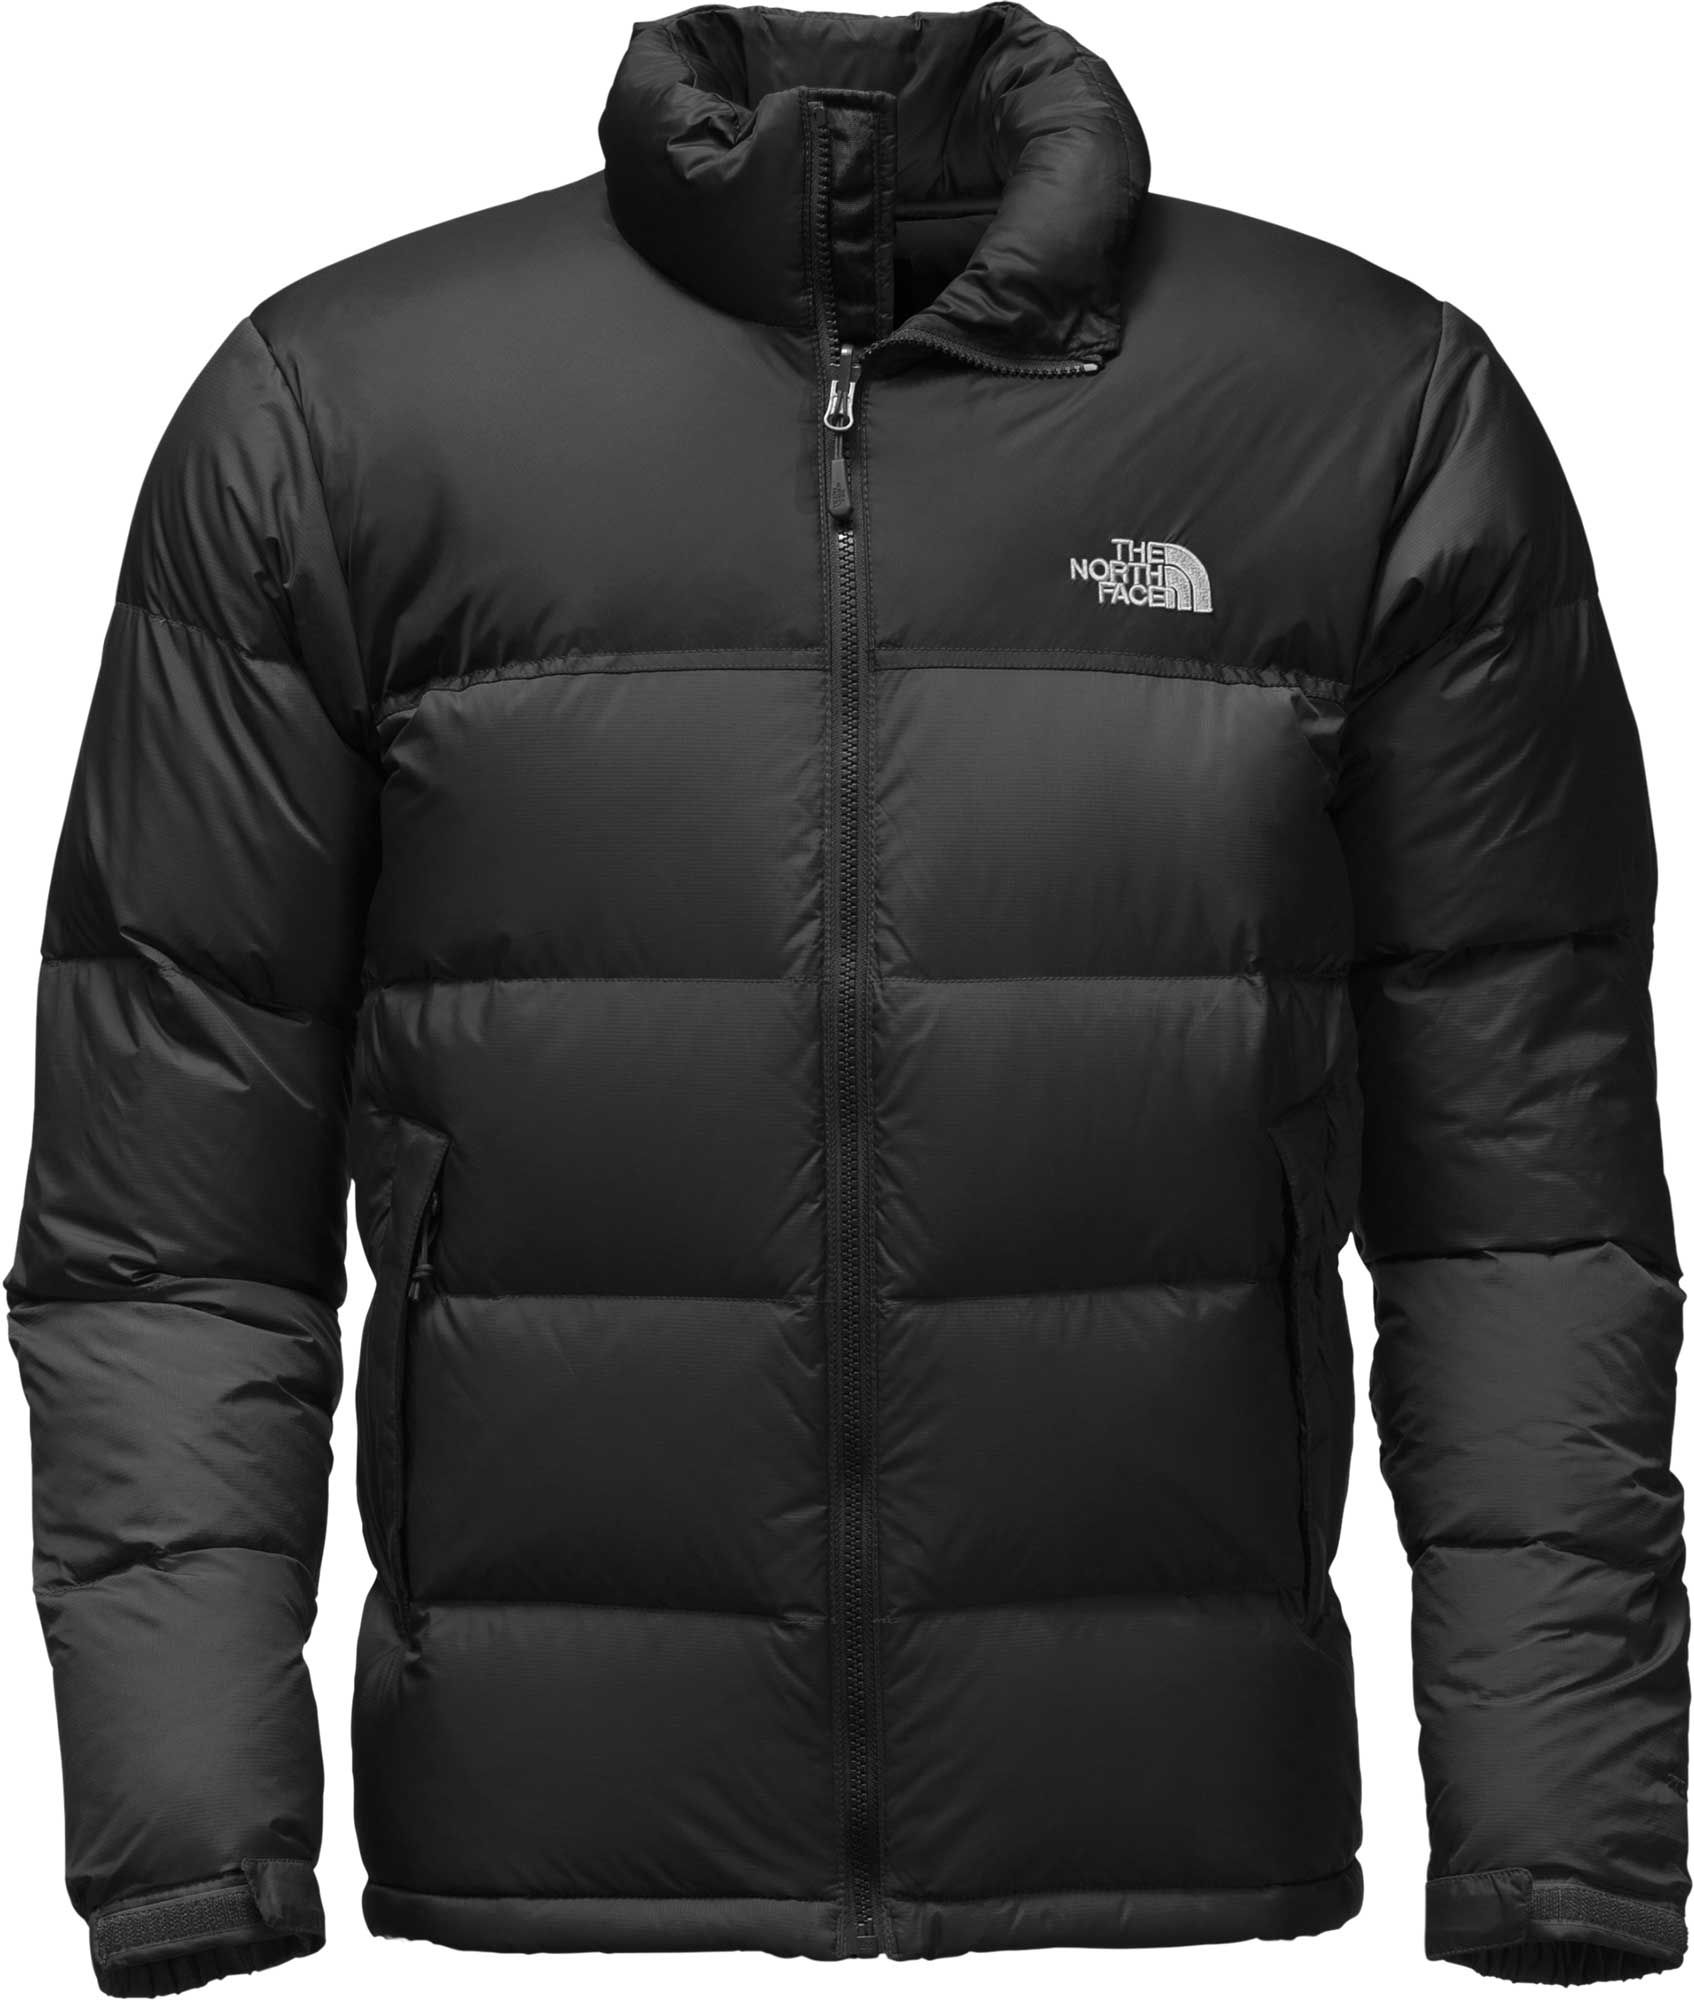 The North Face Men's Jackets & Vests | DICK'S Sporting Goods : north face quilted coats - Adamdwight.com